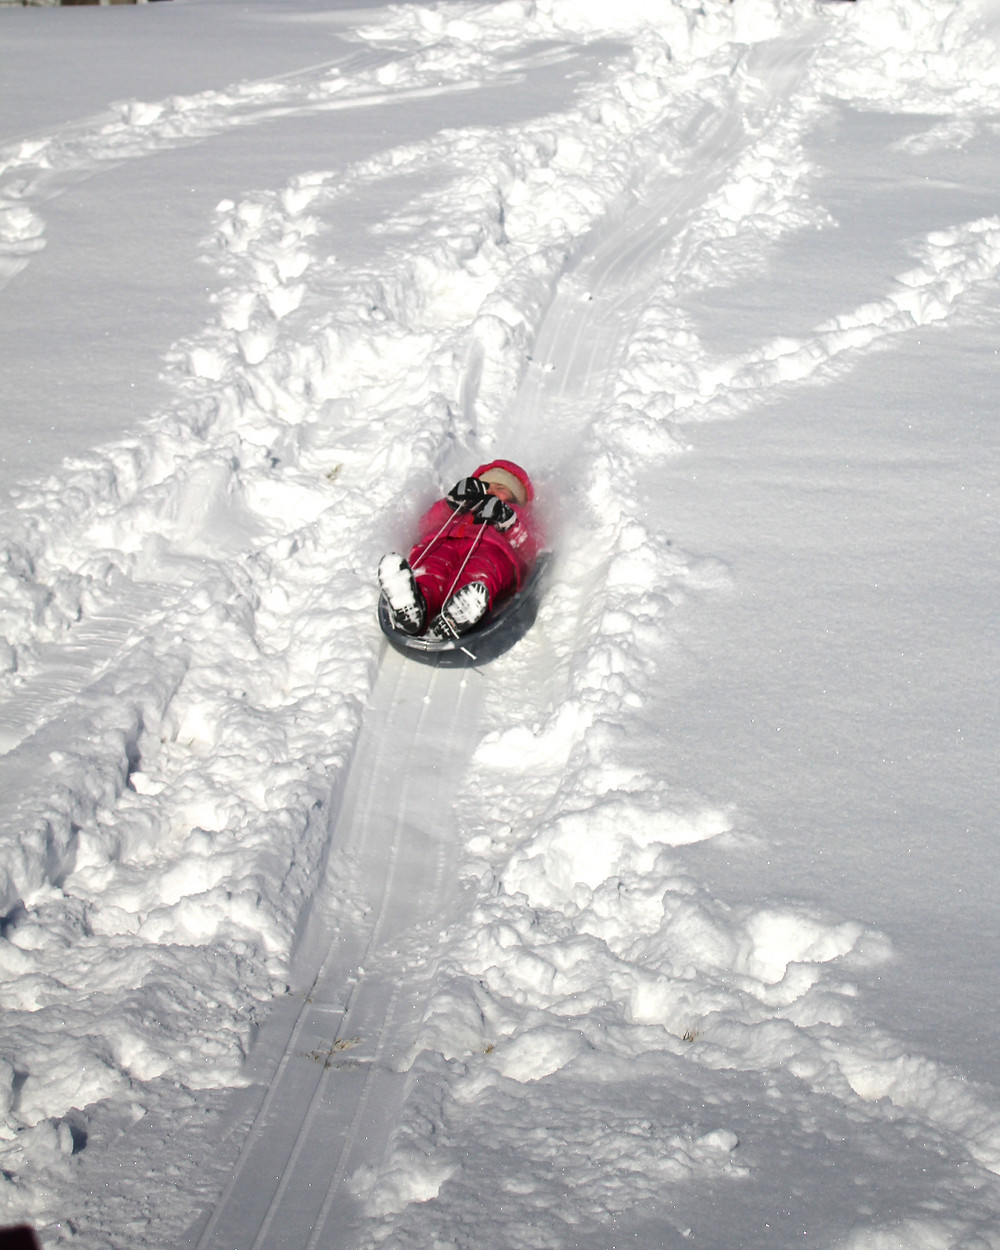 Blue Sky Daycare home daycare child zooming down a hill on a sled